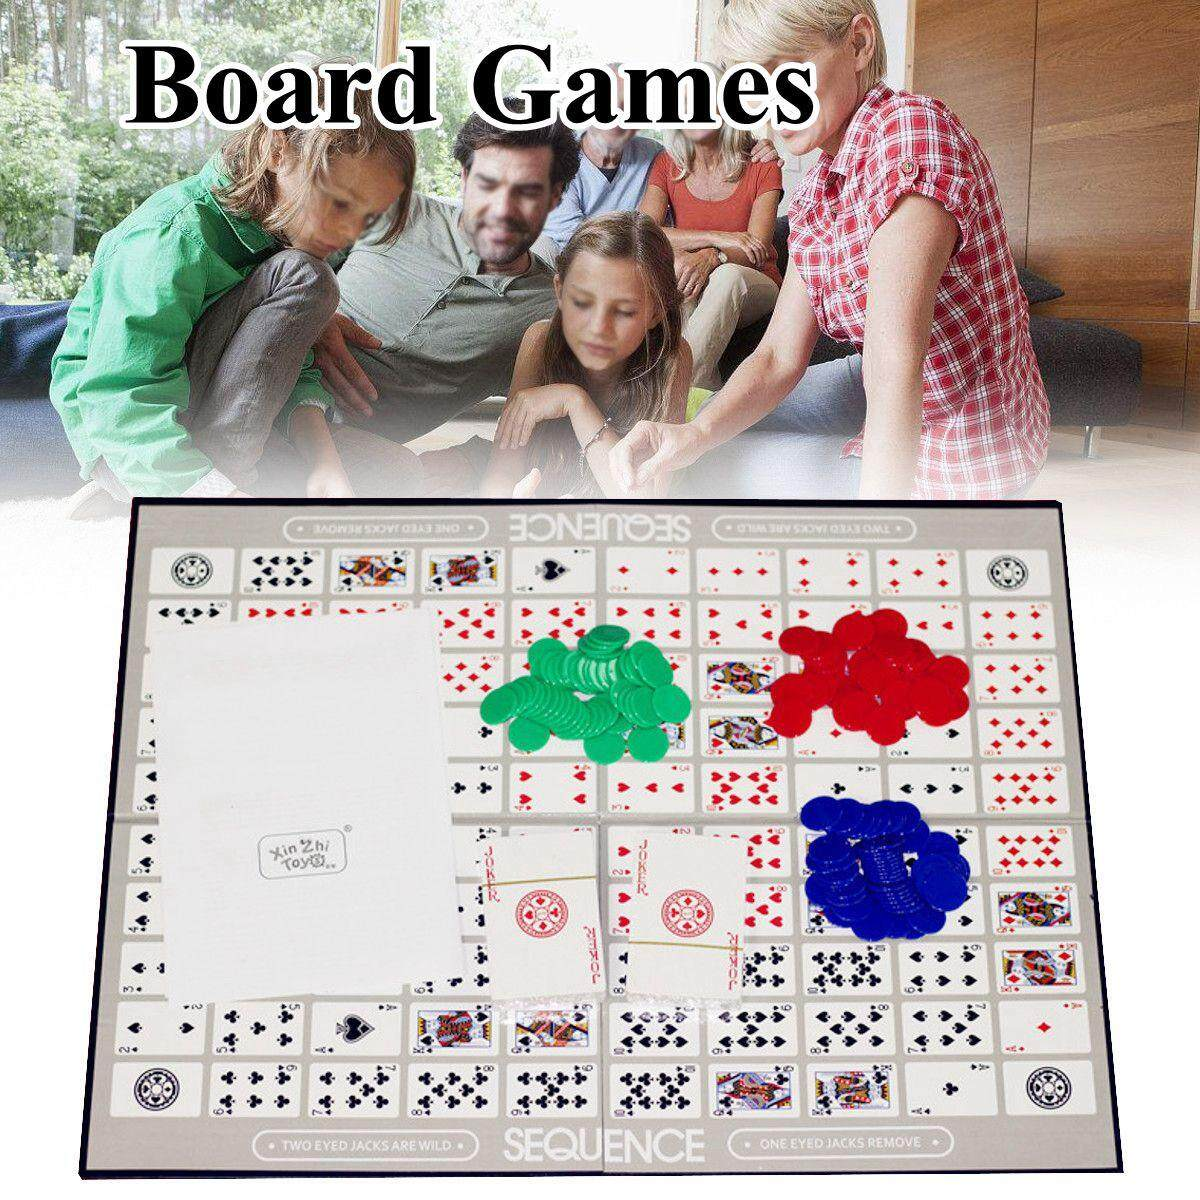 Store Board Games Challenge Sequence Strategy Card For 2 12 Players Family Fun Game Intl Not Specified On Singapore